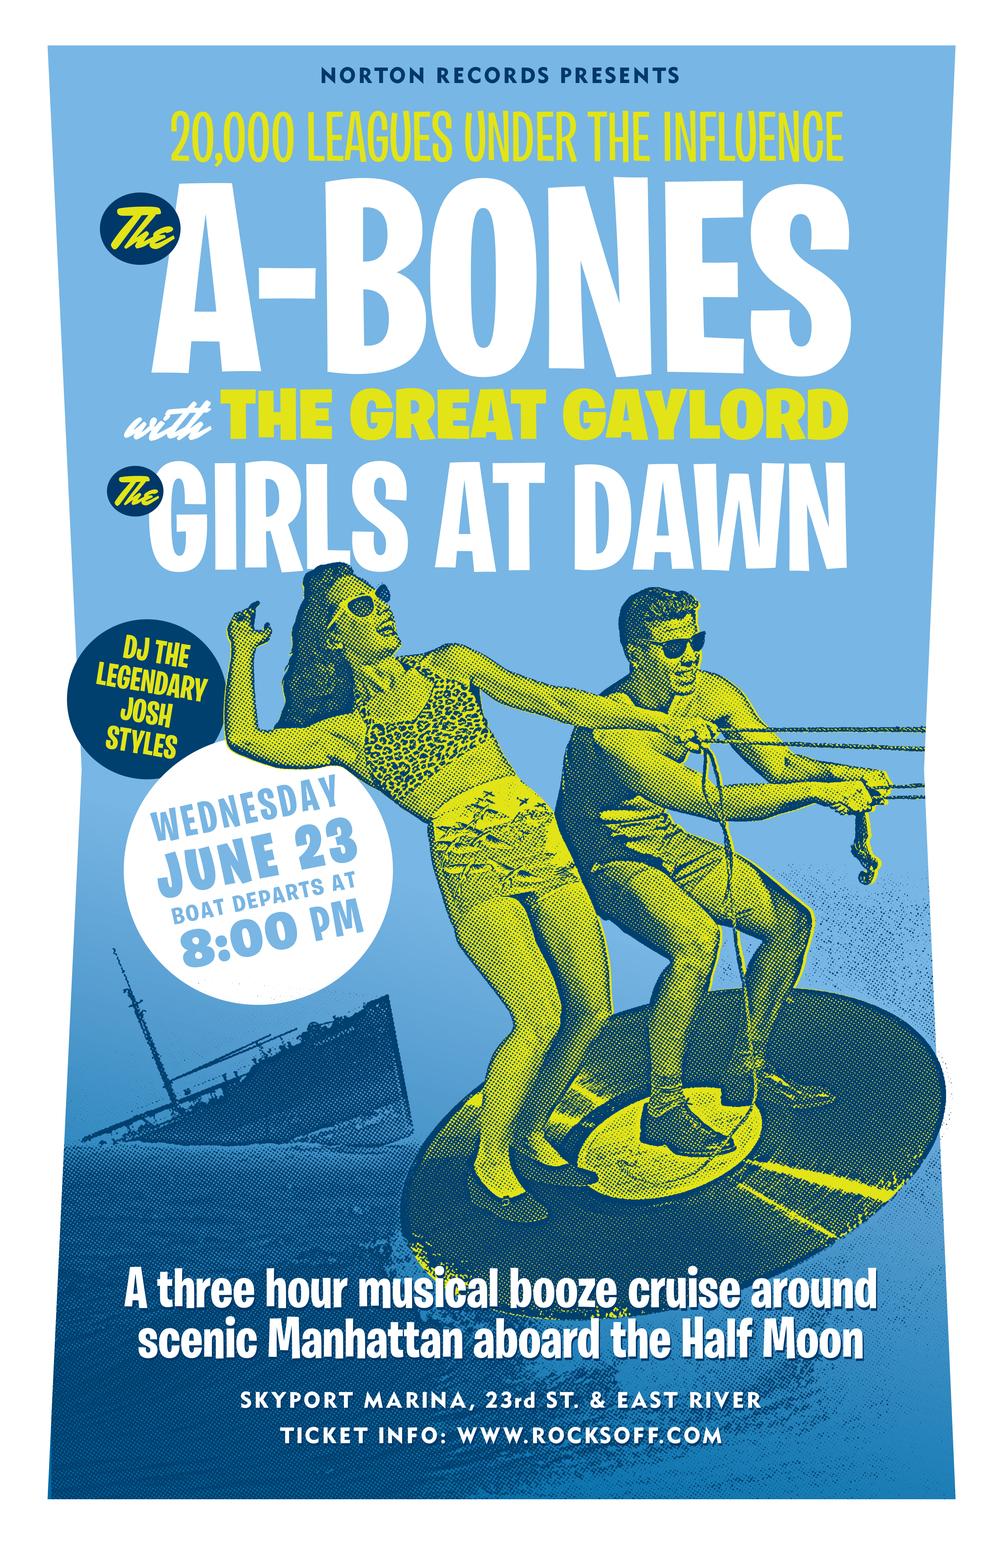 The A-Bones boat cruise poster